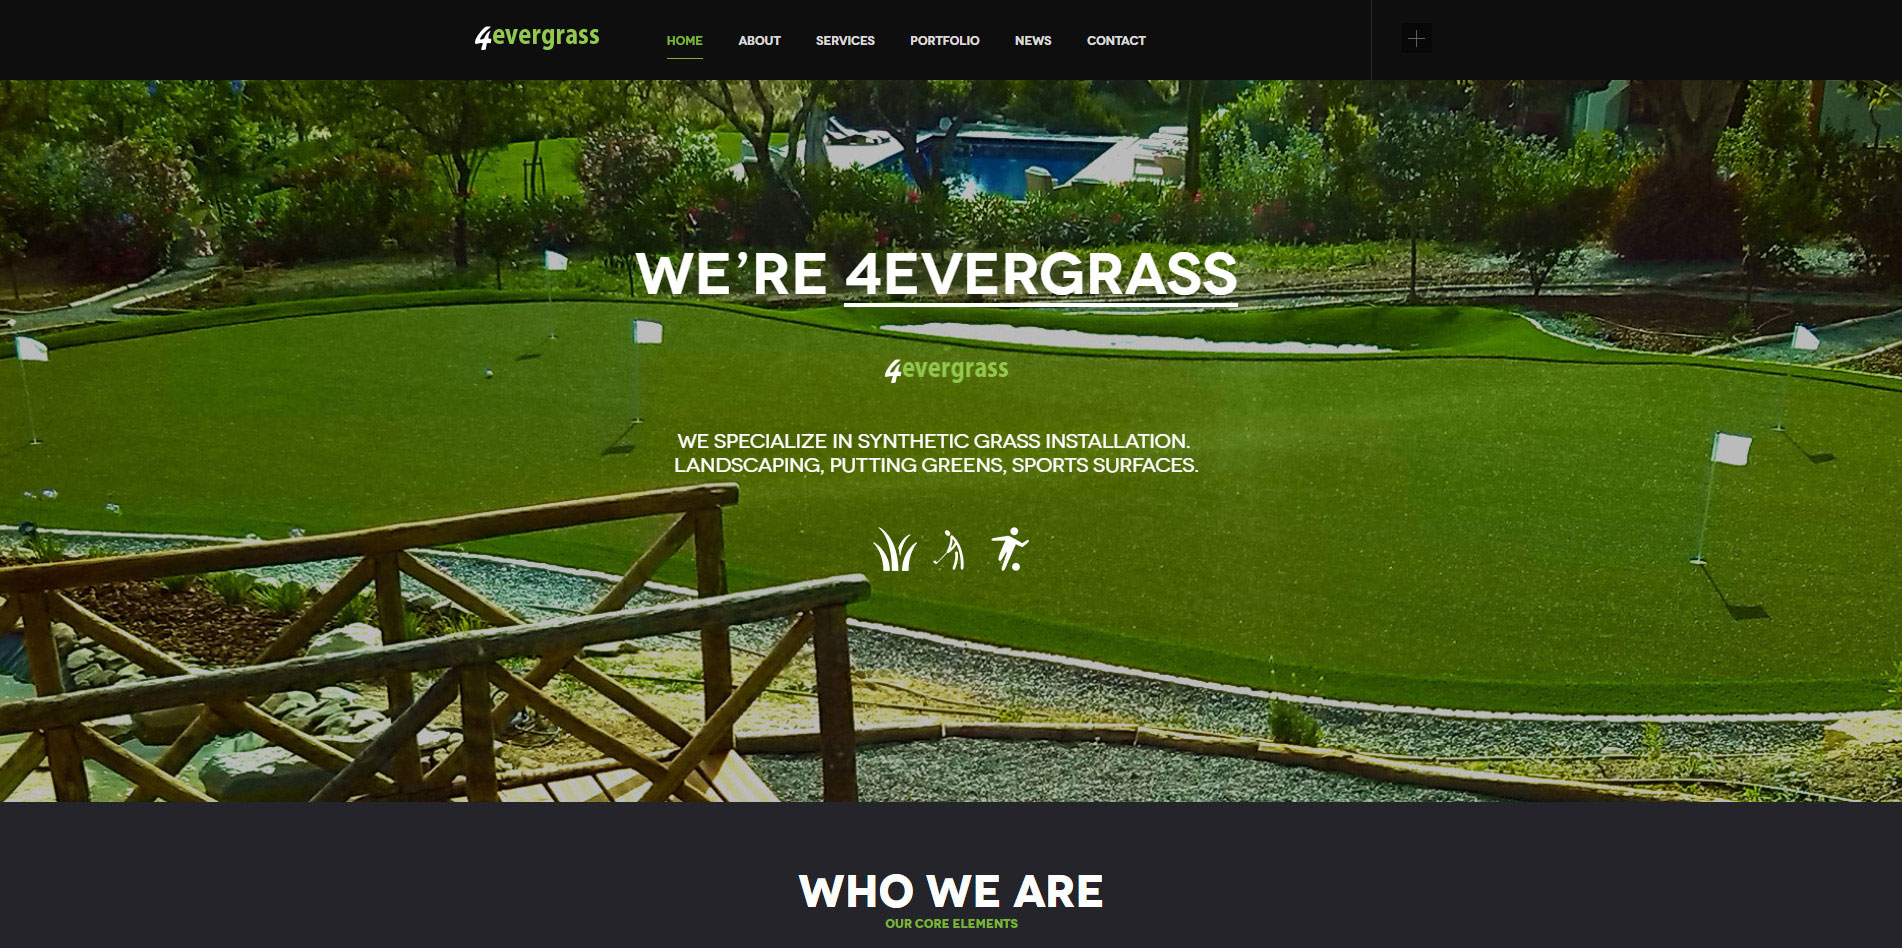 4evergrass website - homepage